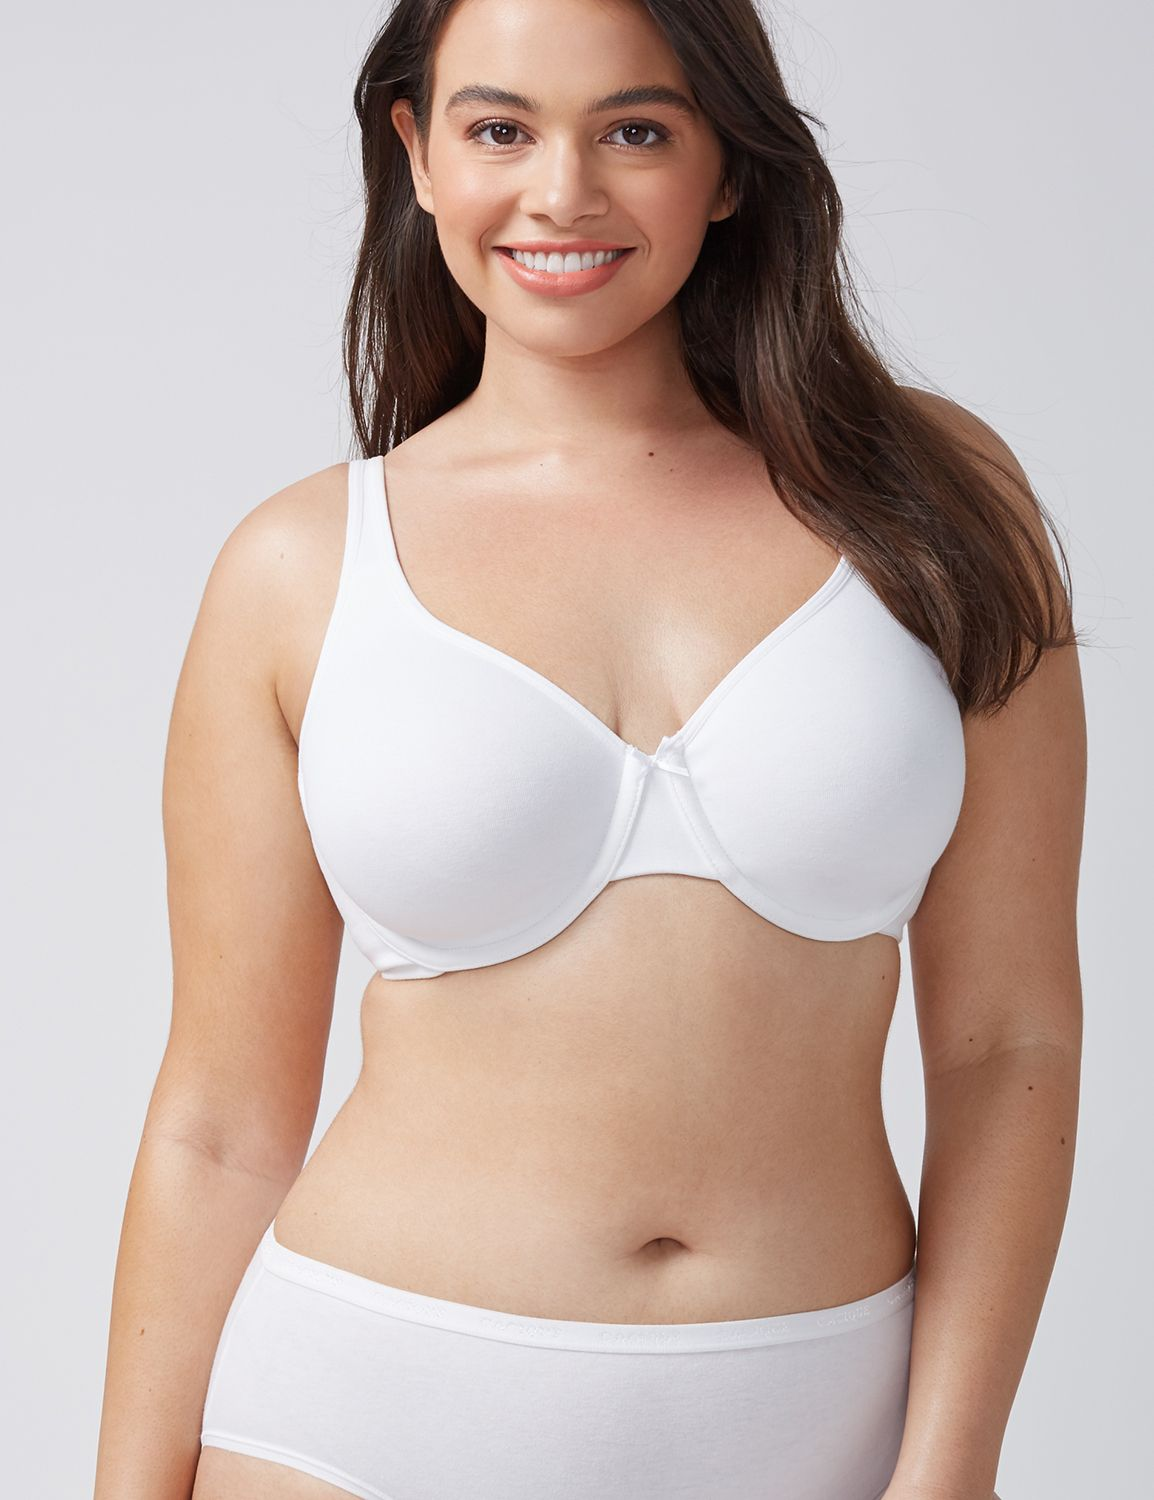 Lane Bryant Womens Cotton Unlined Full Coverage Bra 44C White